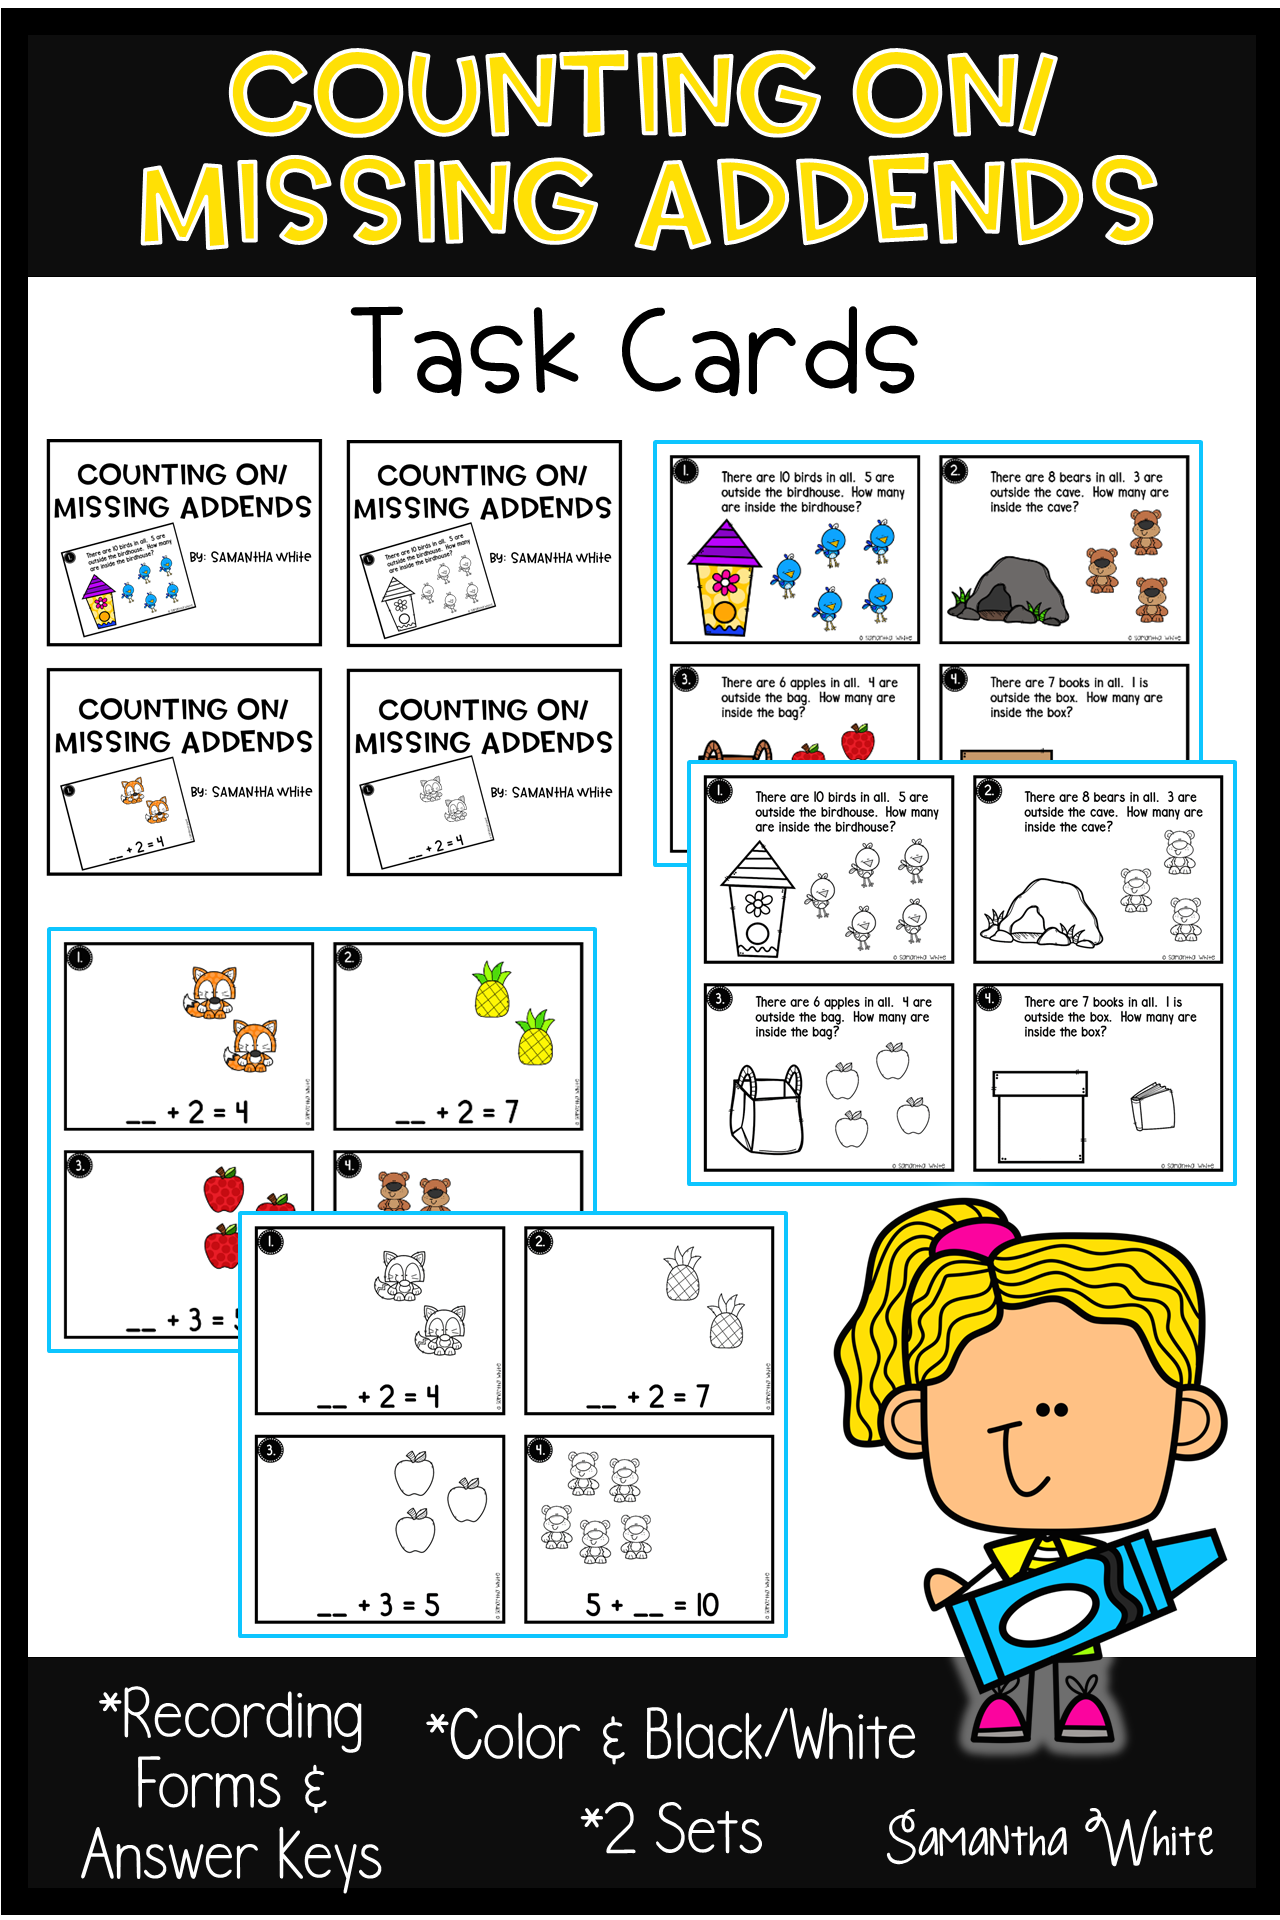 Counting On Missing Addends Task Cards